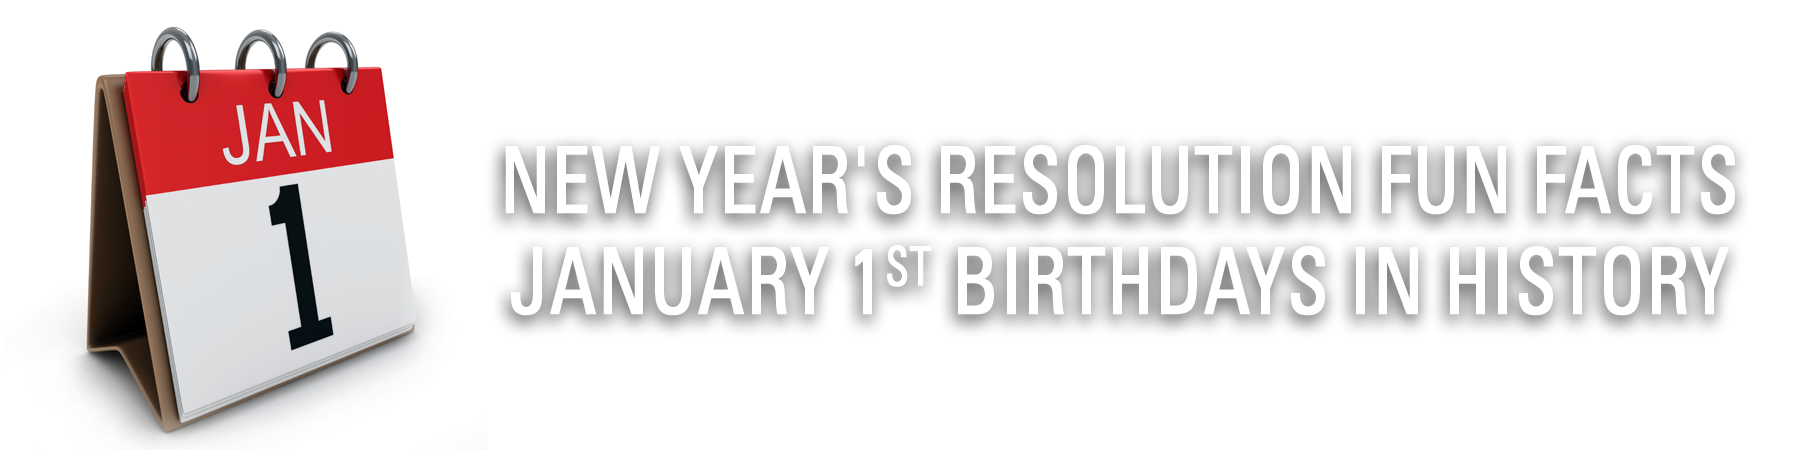 New Year's Resolution Fun Facts - January 1st Birthdays in History